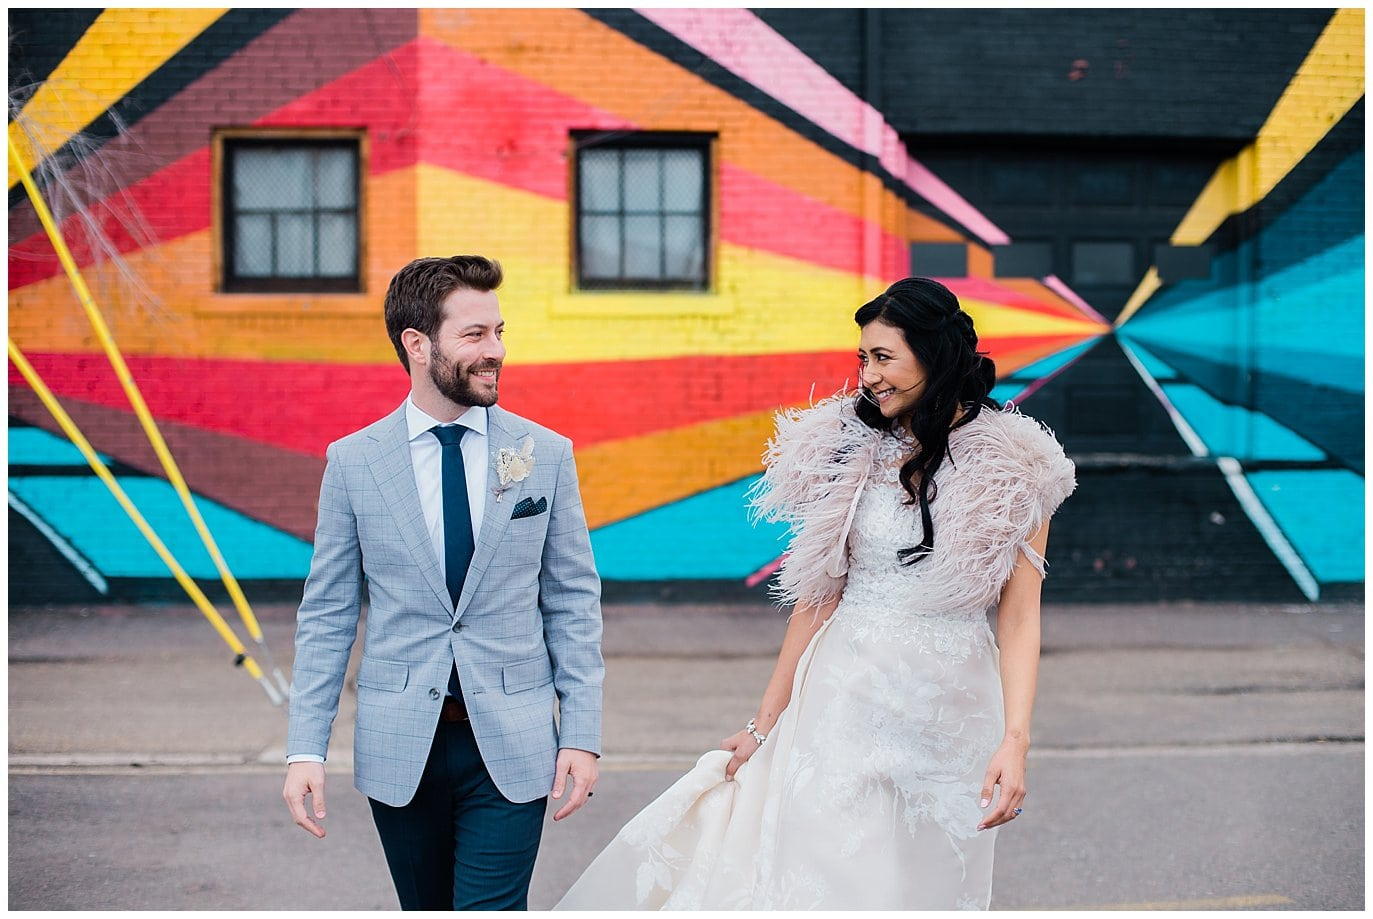 RiNo Art District by Blanc Wedding Photographer Jennie Crate